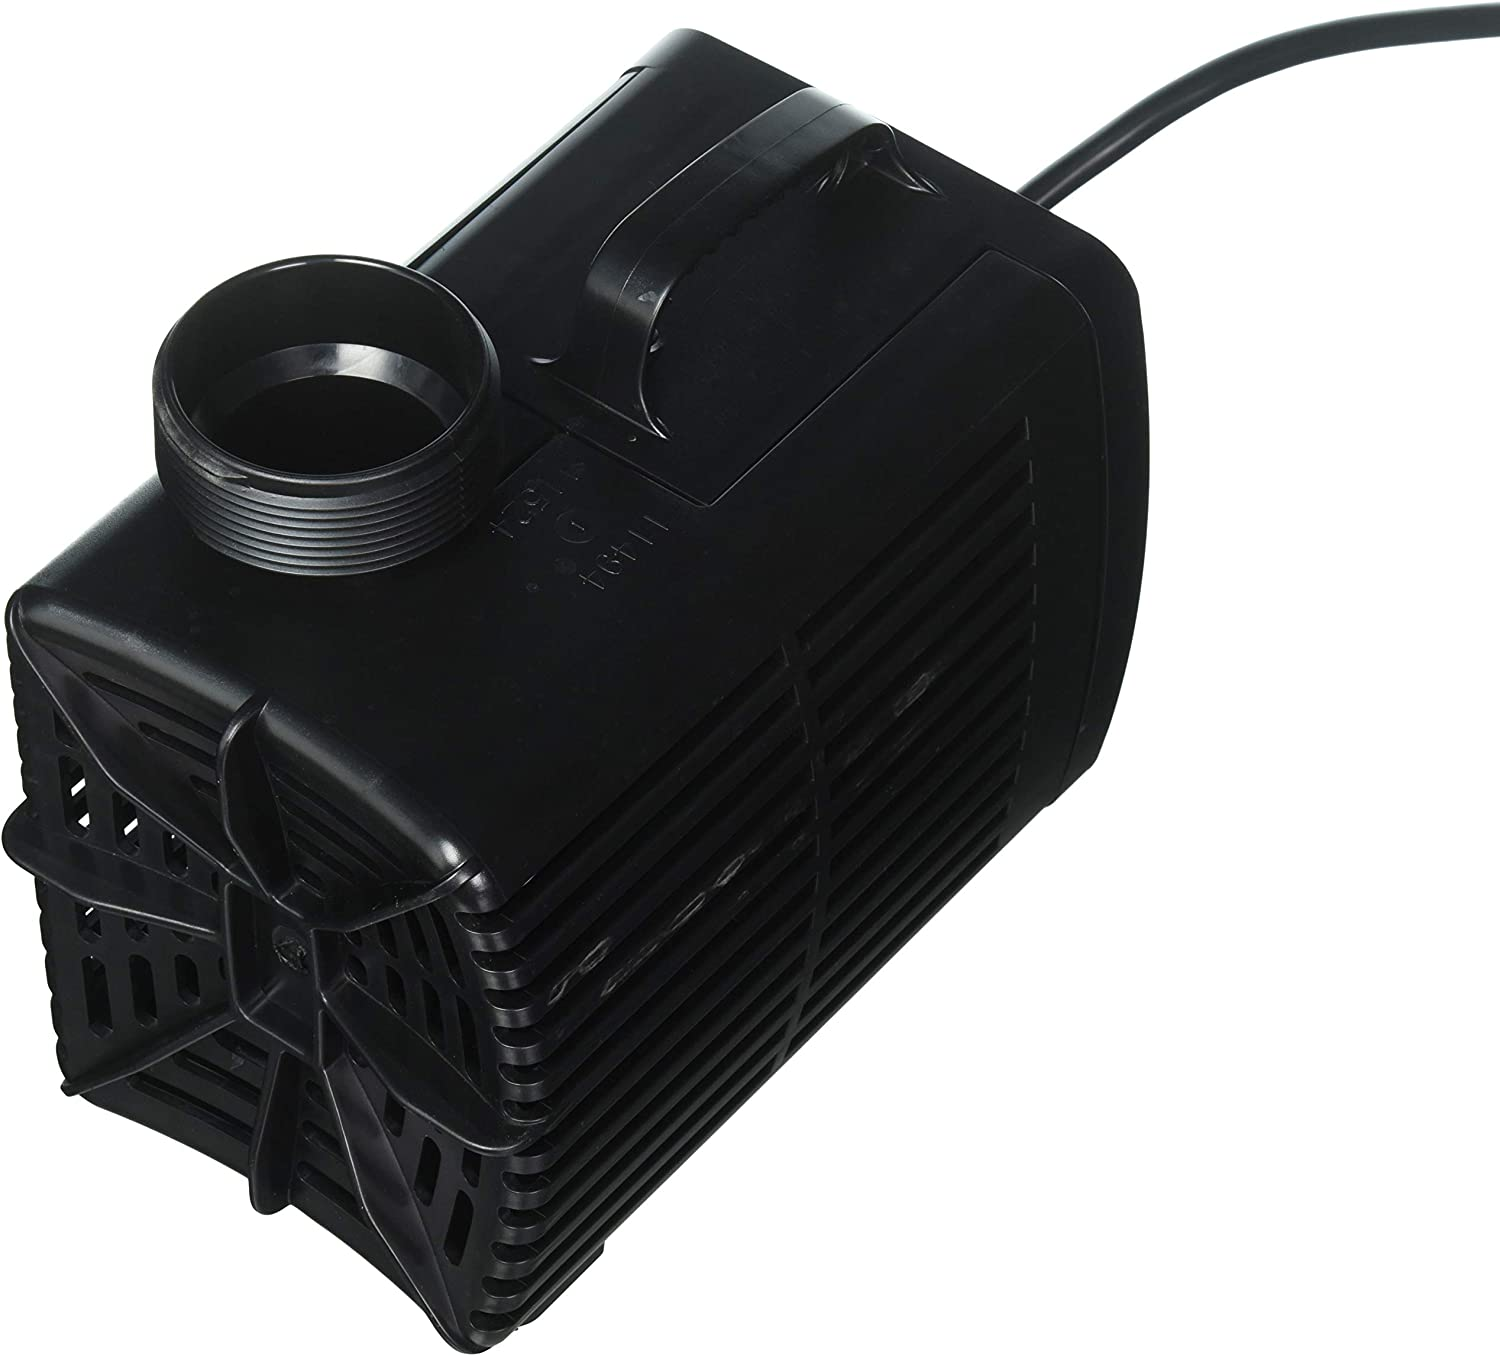 Beckett Corporation 4700 GPH Submersible Waterfall Pond Pump - Auto Shutoff Water Pump for Large Waterfalls - 18.5' Max Fountain Height, Black